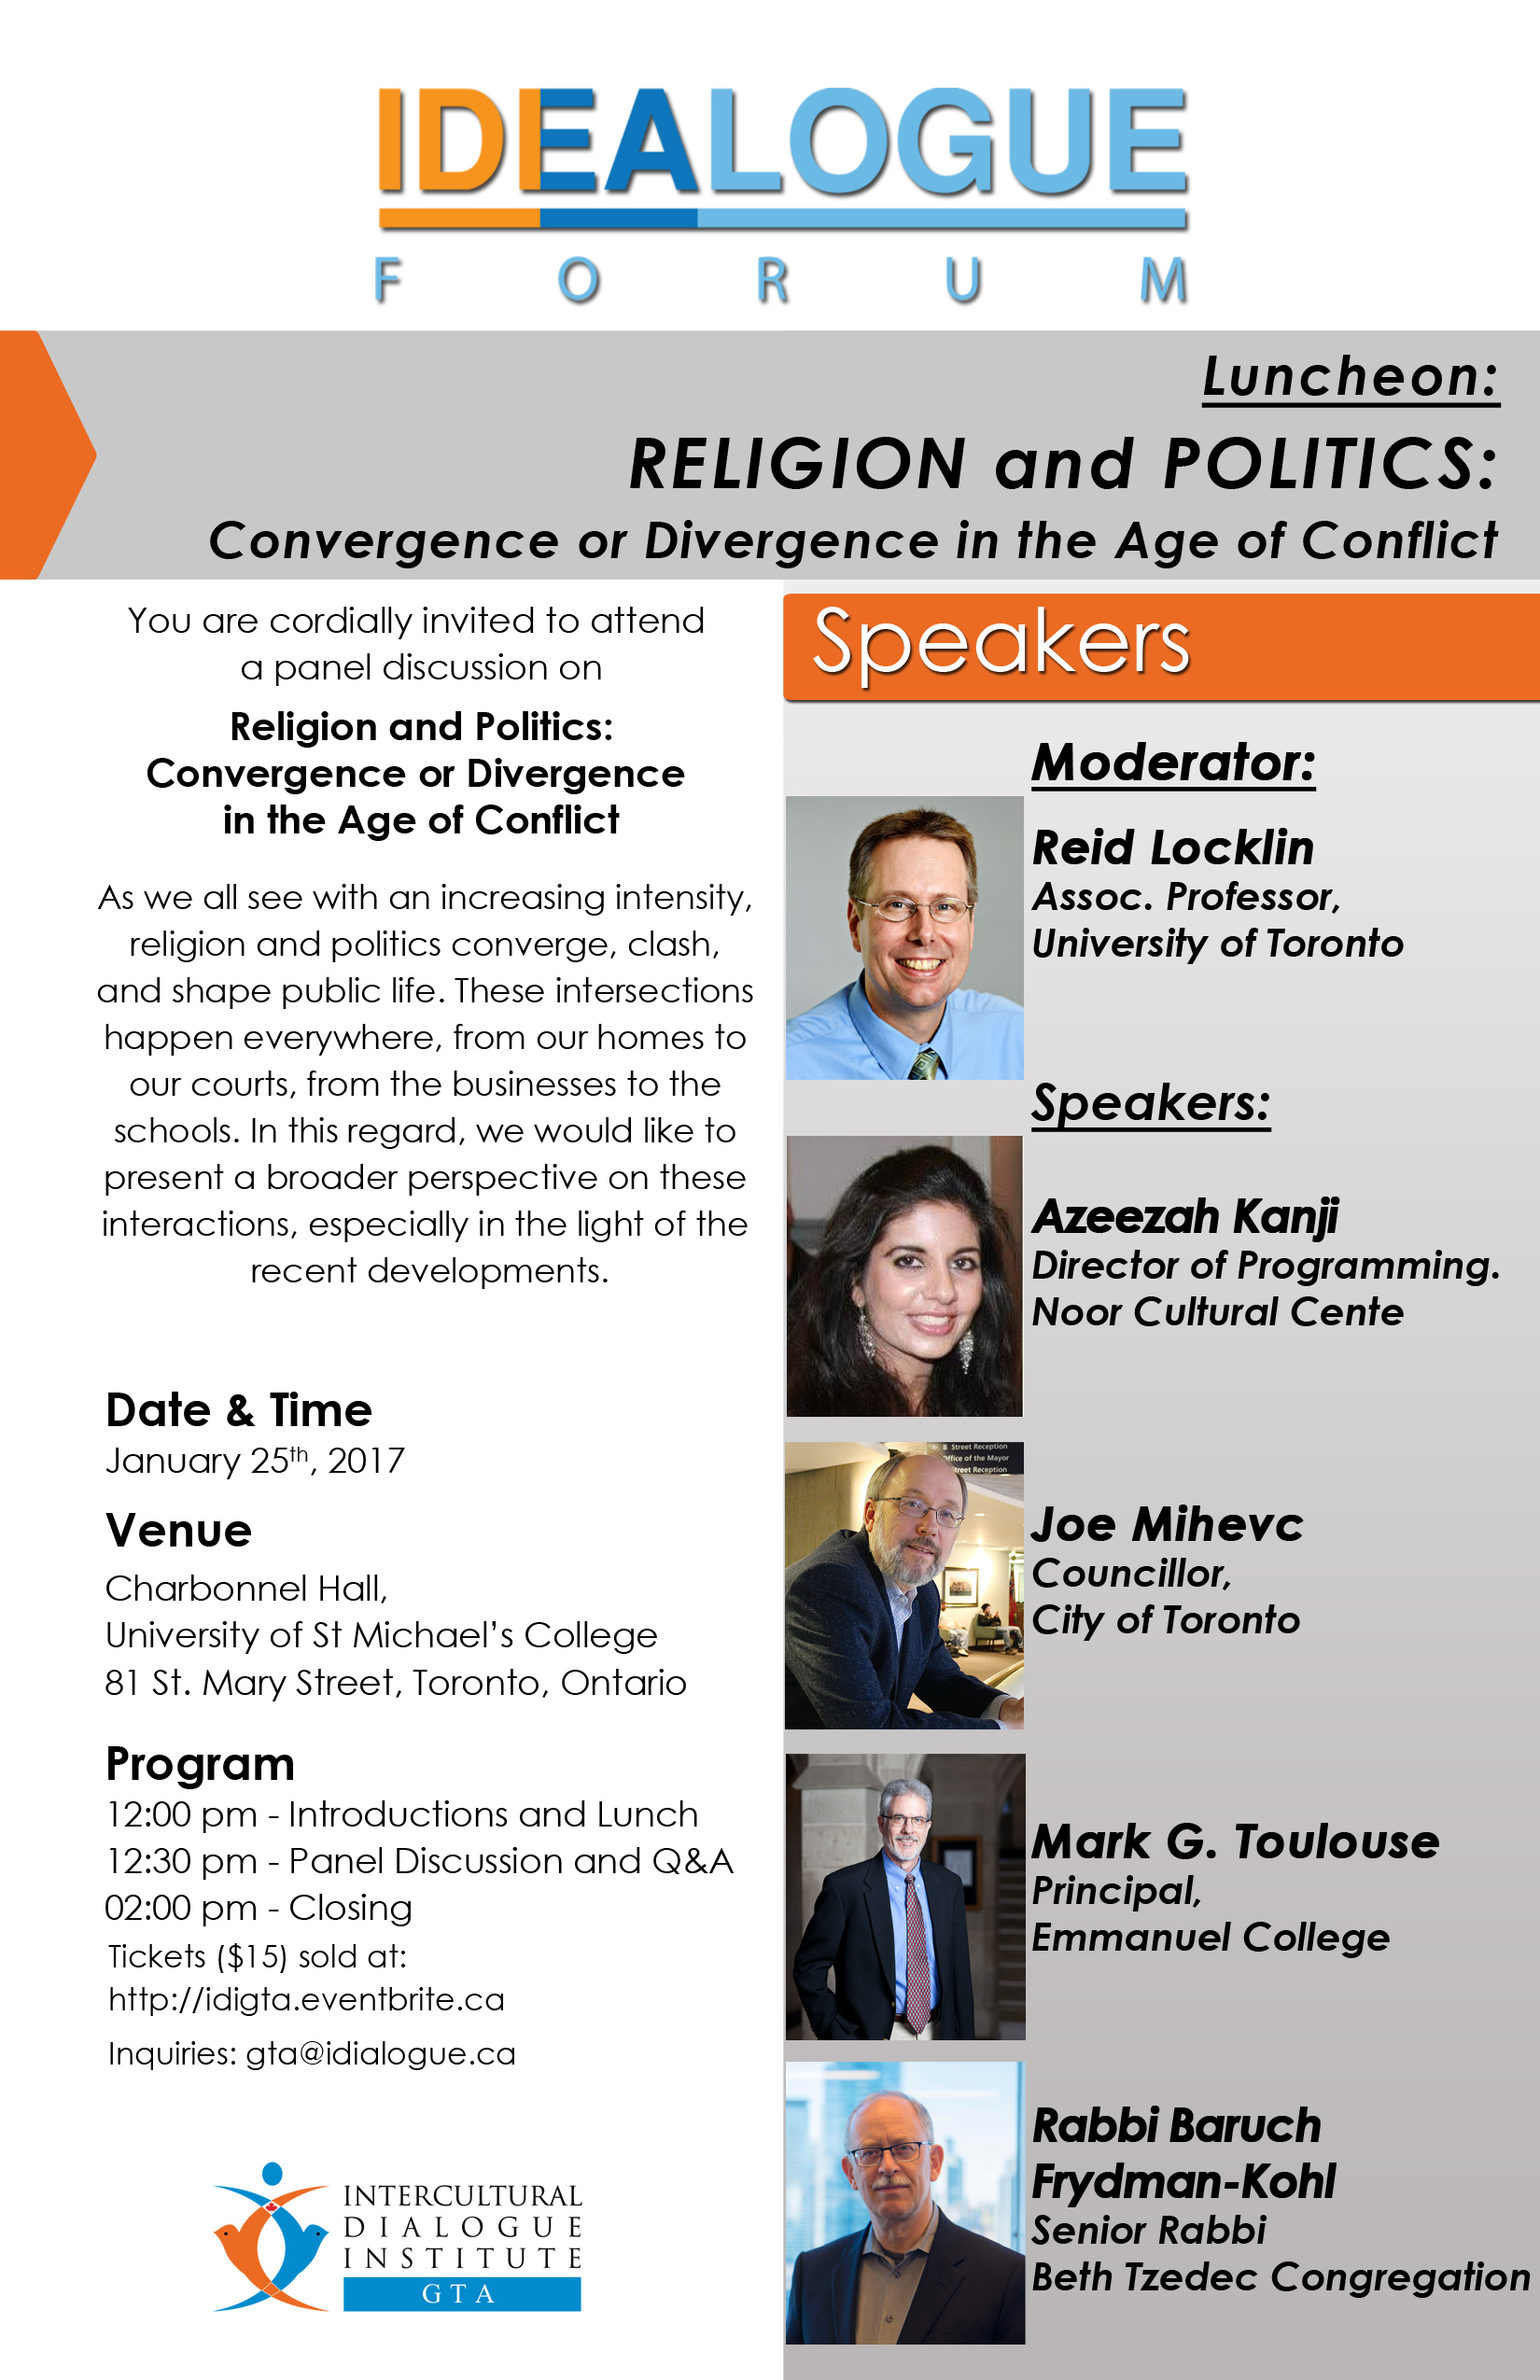 Luncheon: RELIGION and POLITICS: Convergence or Divergence in the Age of Conflict, Intercultural Dialogue Institute, RAbbi Frydman Kohl, Mark Toulouse, Joe Mihevc, Azeezah Kanji